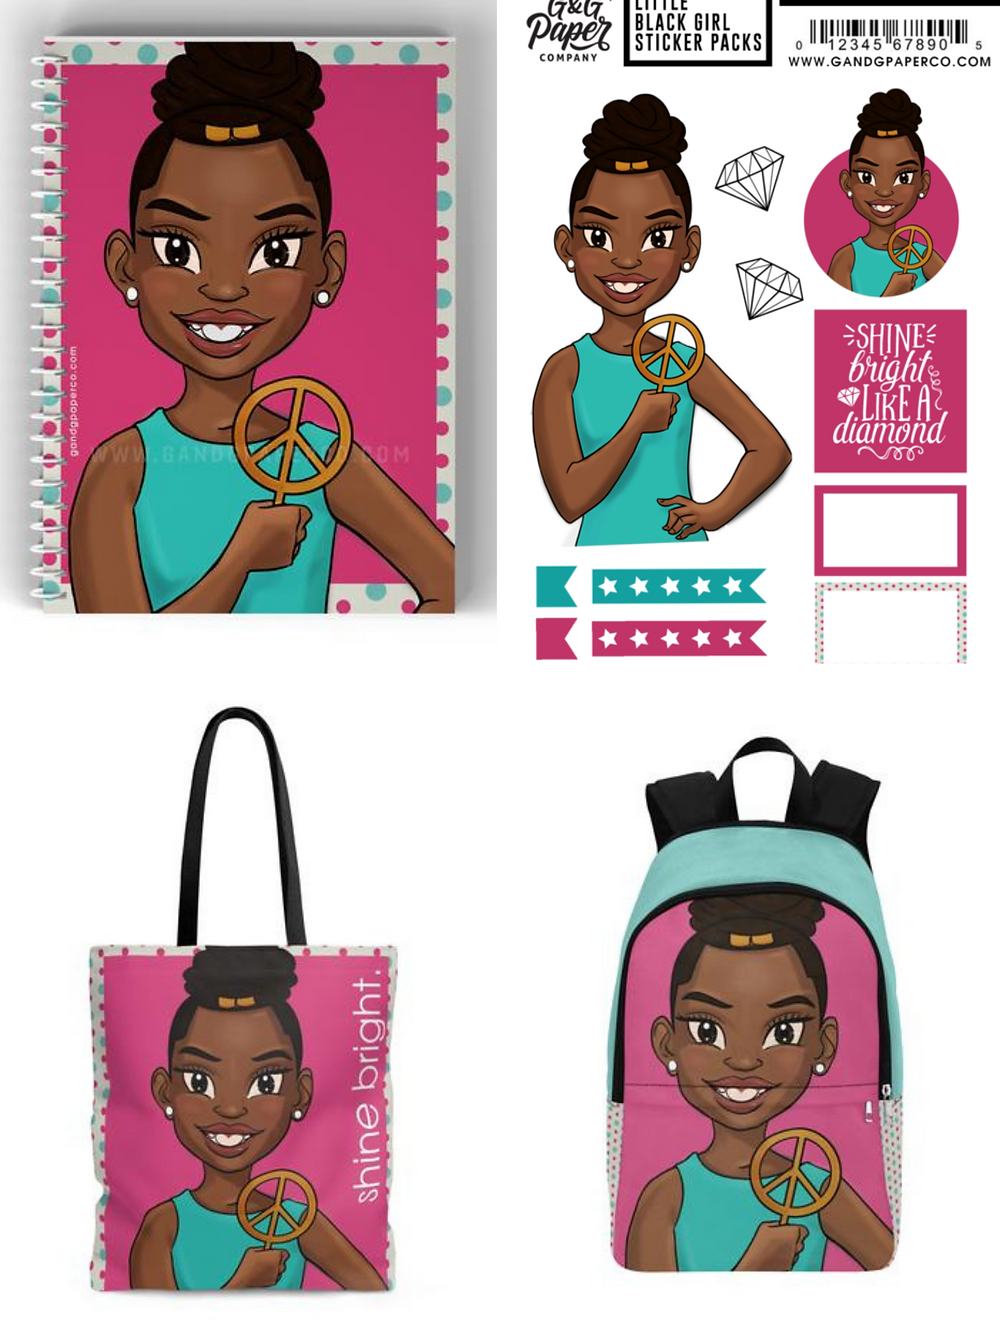 G & G Paper Co., Black-owned notebooks, tote bags, and school supplies